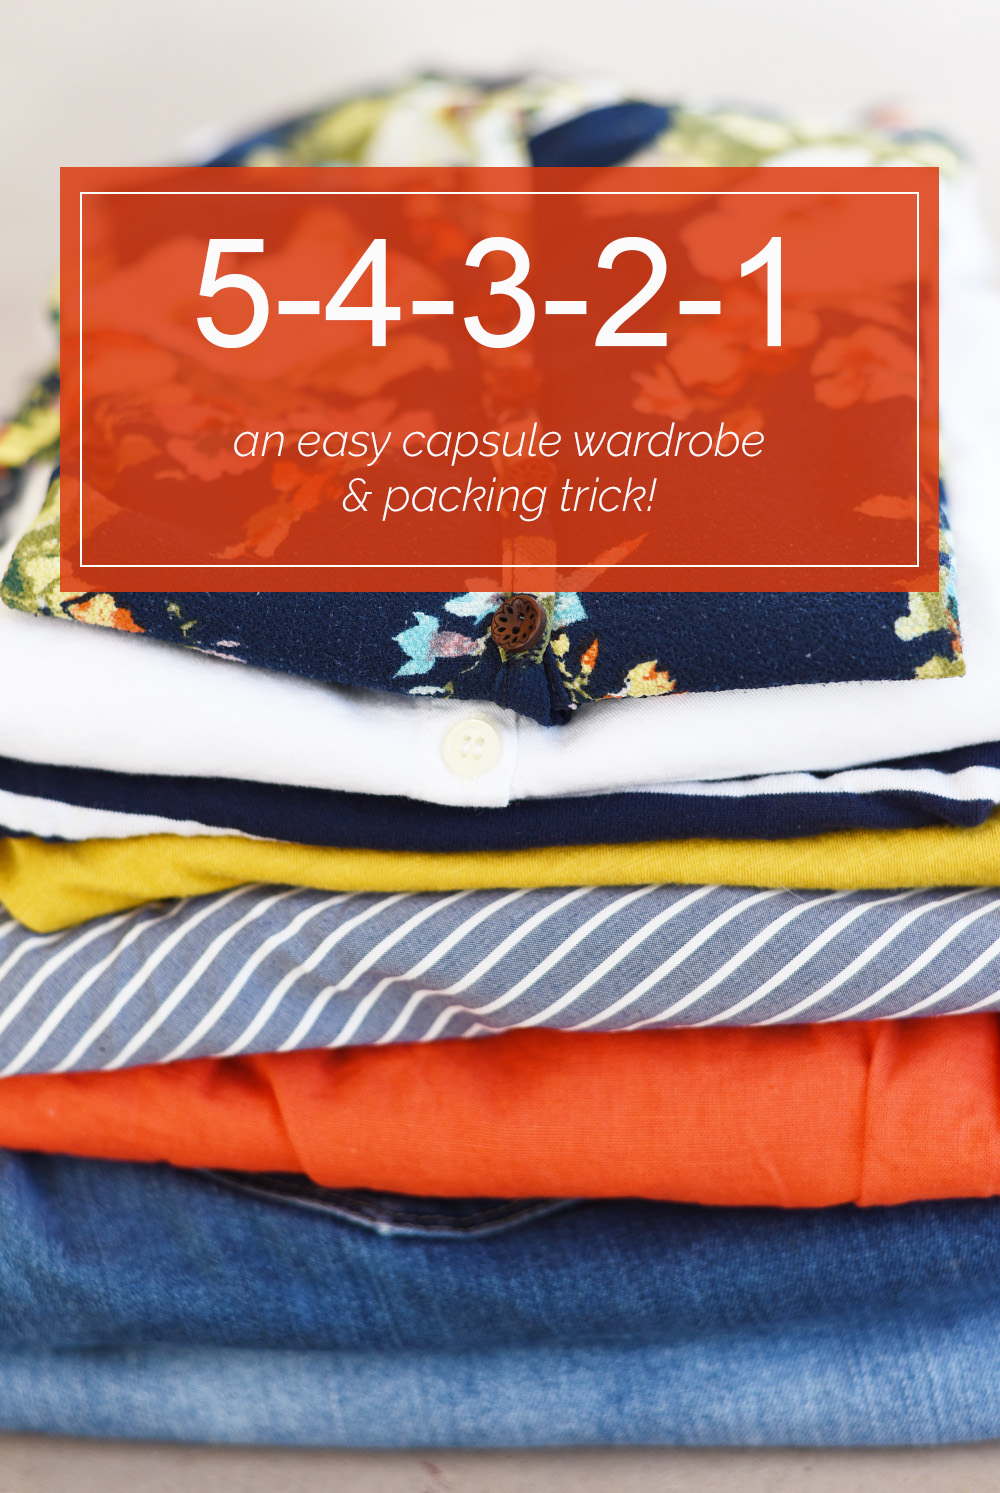 5-4-3-2-1 An easy capsule wardrobe and packing trick